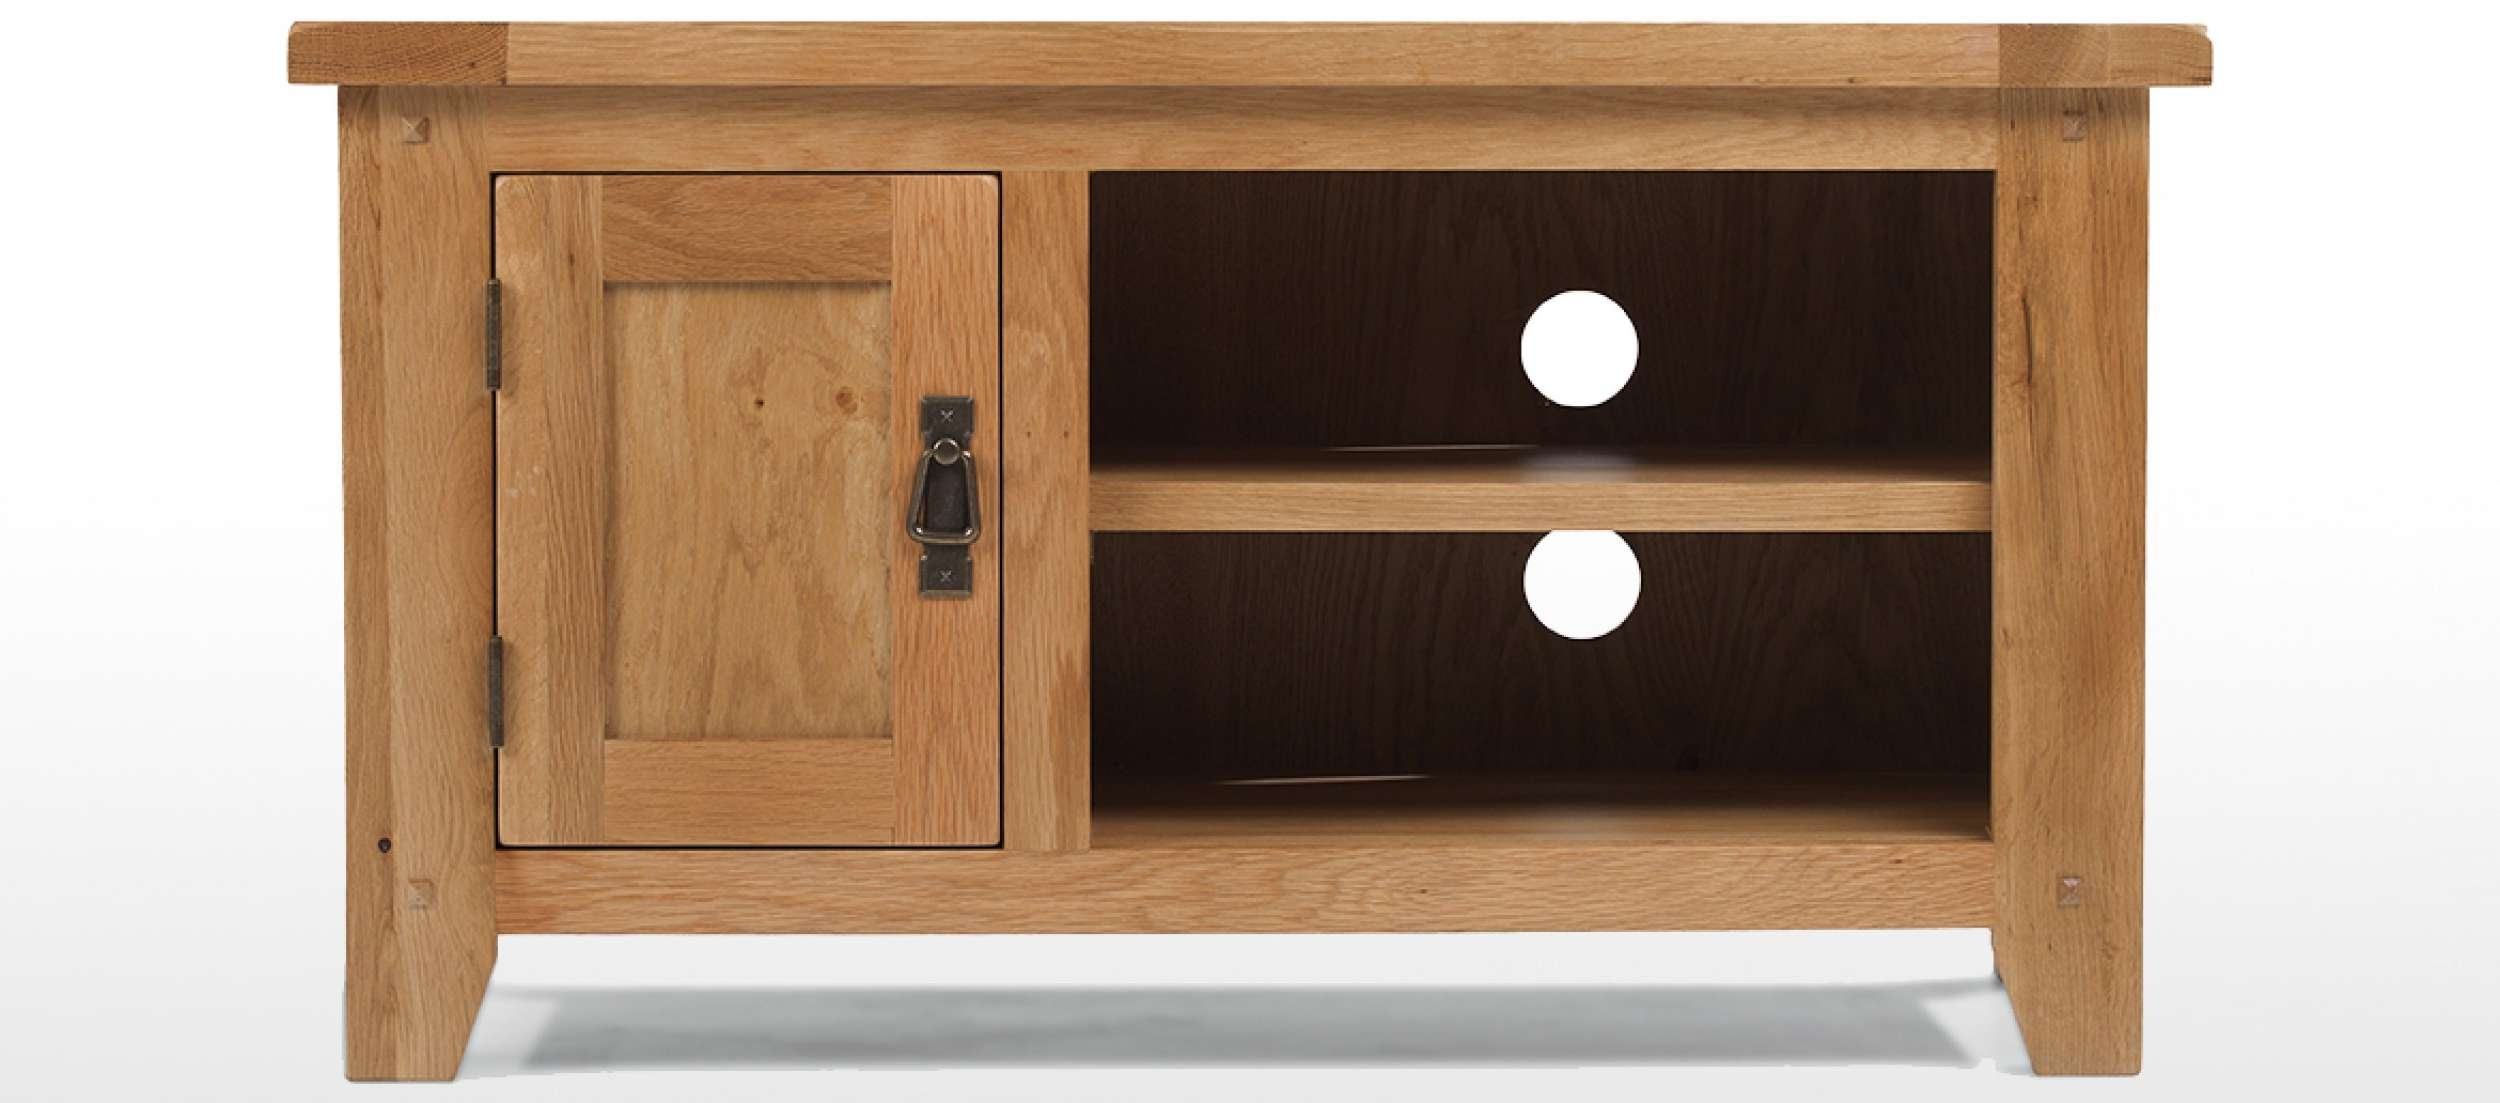 Rustic Oak Tv Unit | Quercus Living Within Oak Tv Cabinets (View 11 of 20)